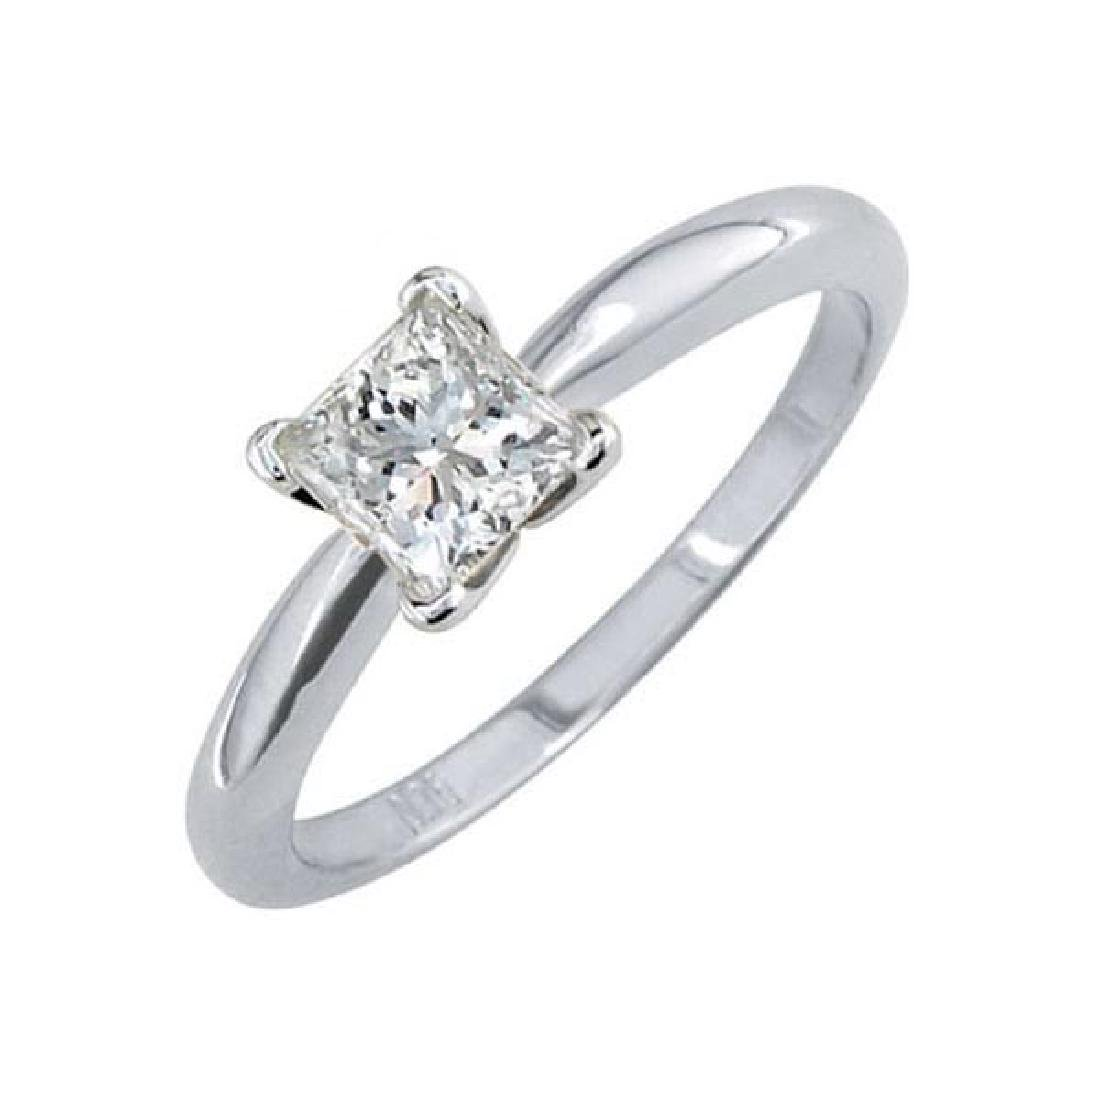 Certified 1.11 CTW Princess Diamond Solitaire 14k Ring